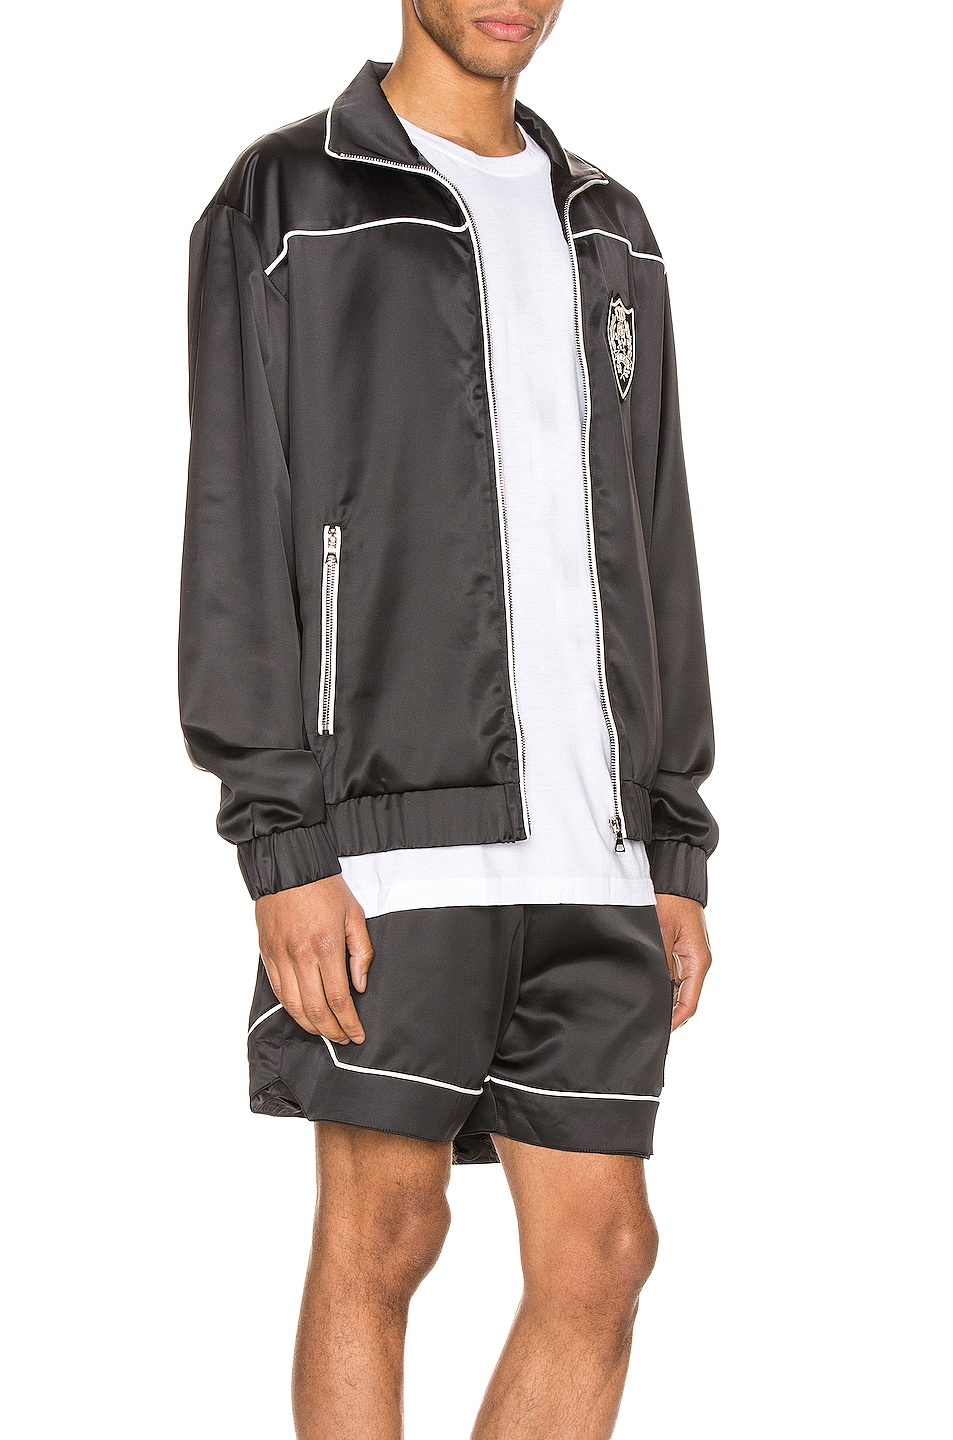 Image 3 of Keiser Clark The Academy Tracksuit Jacket in Black & White